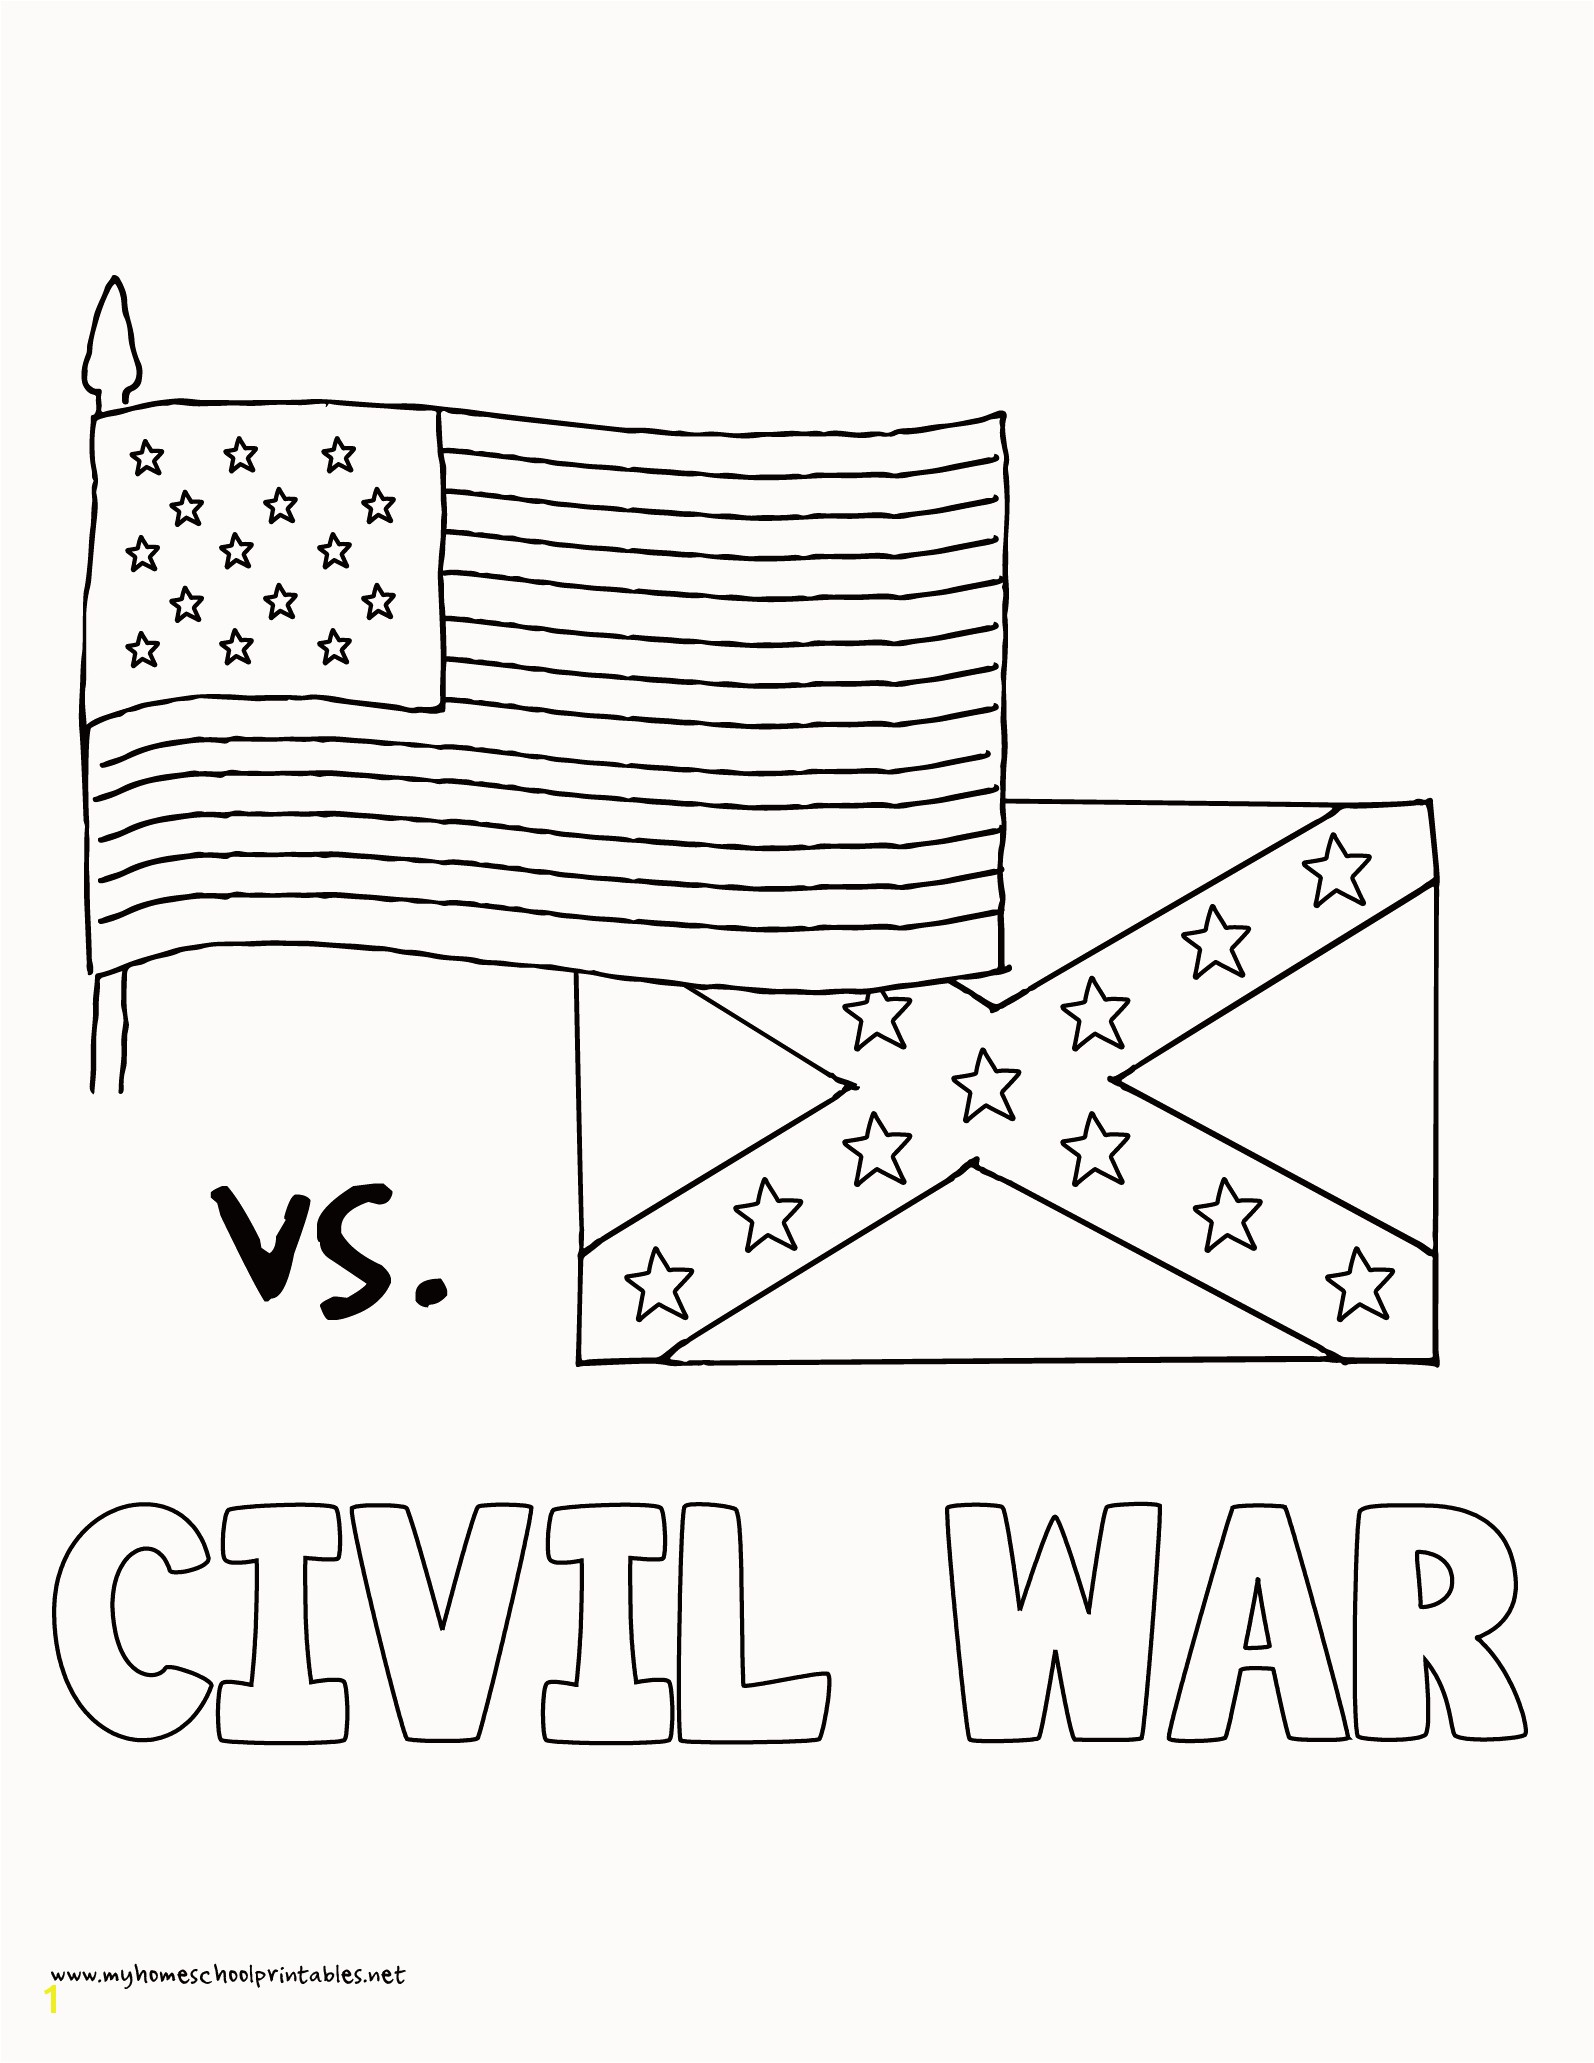 Civil War Coloring Pages Pdf Fresh 28 Collection Civil War Printable Coloring Pages 30